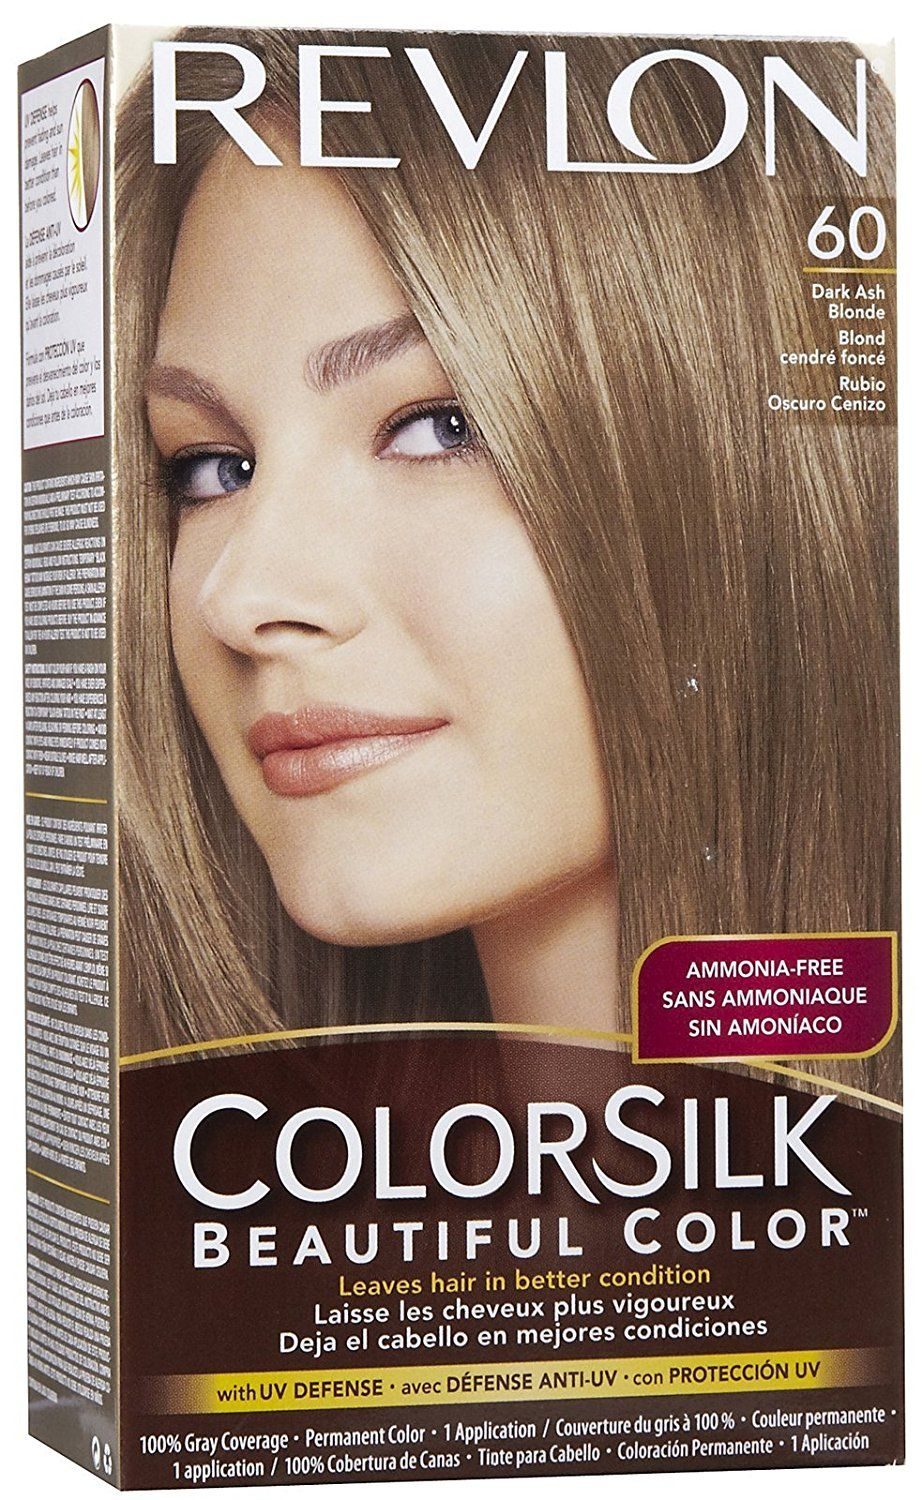 Revlon Colorsilk Beautiful Haircolor Ammonia Free Permanent Haircolor Dark Ash Blonde Revlon Colorsilk Hair Color Dyed Blonde Hair